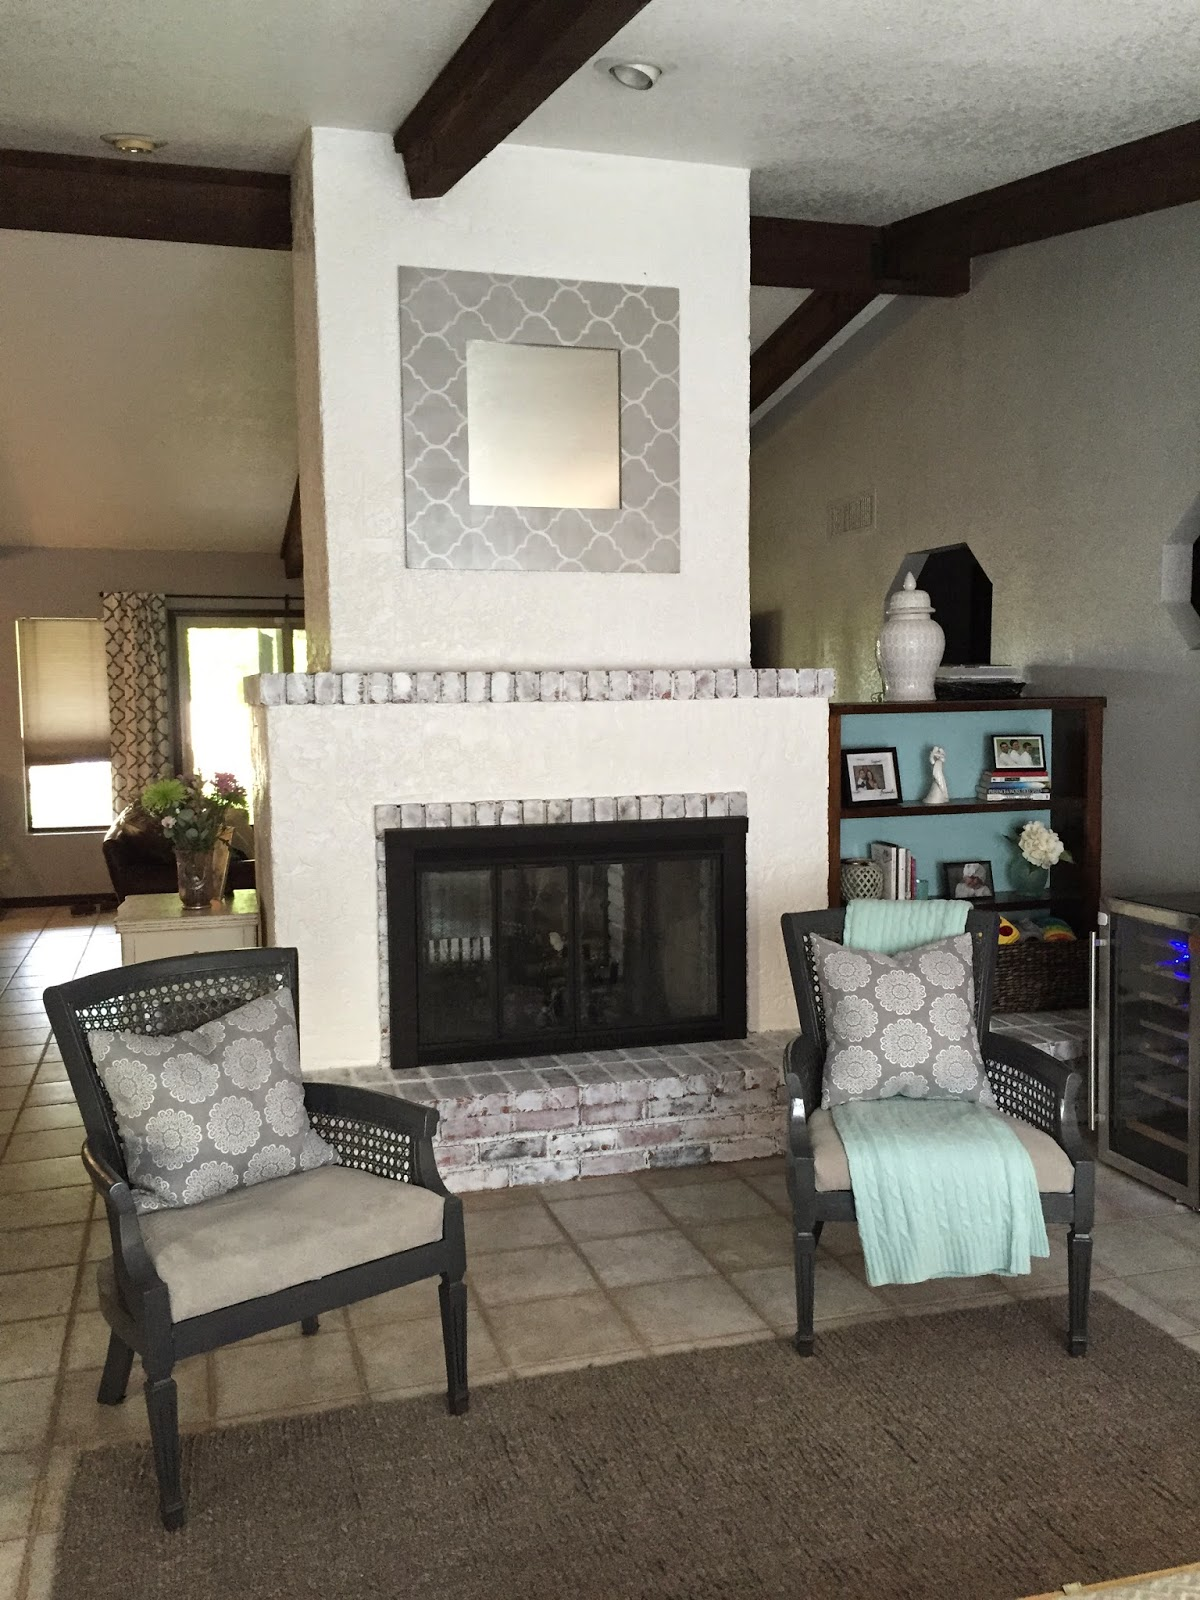 reimagined how to paint a brick and stucco fireplace